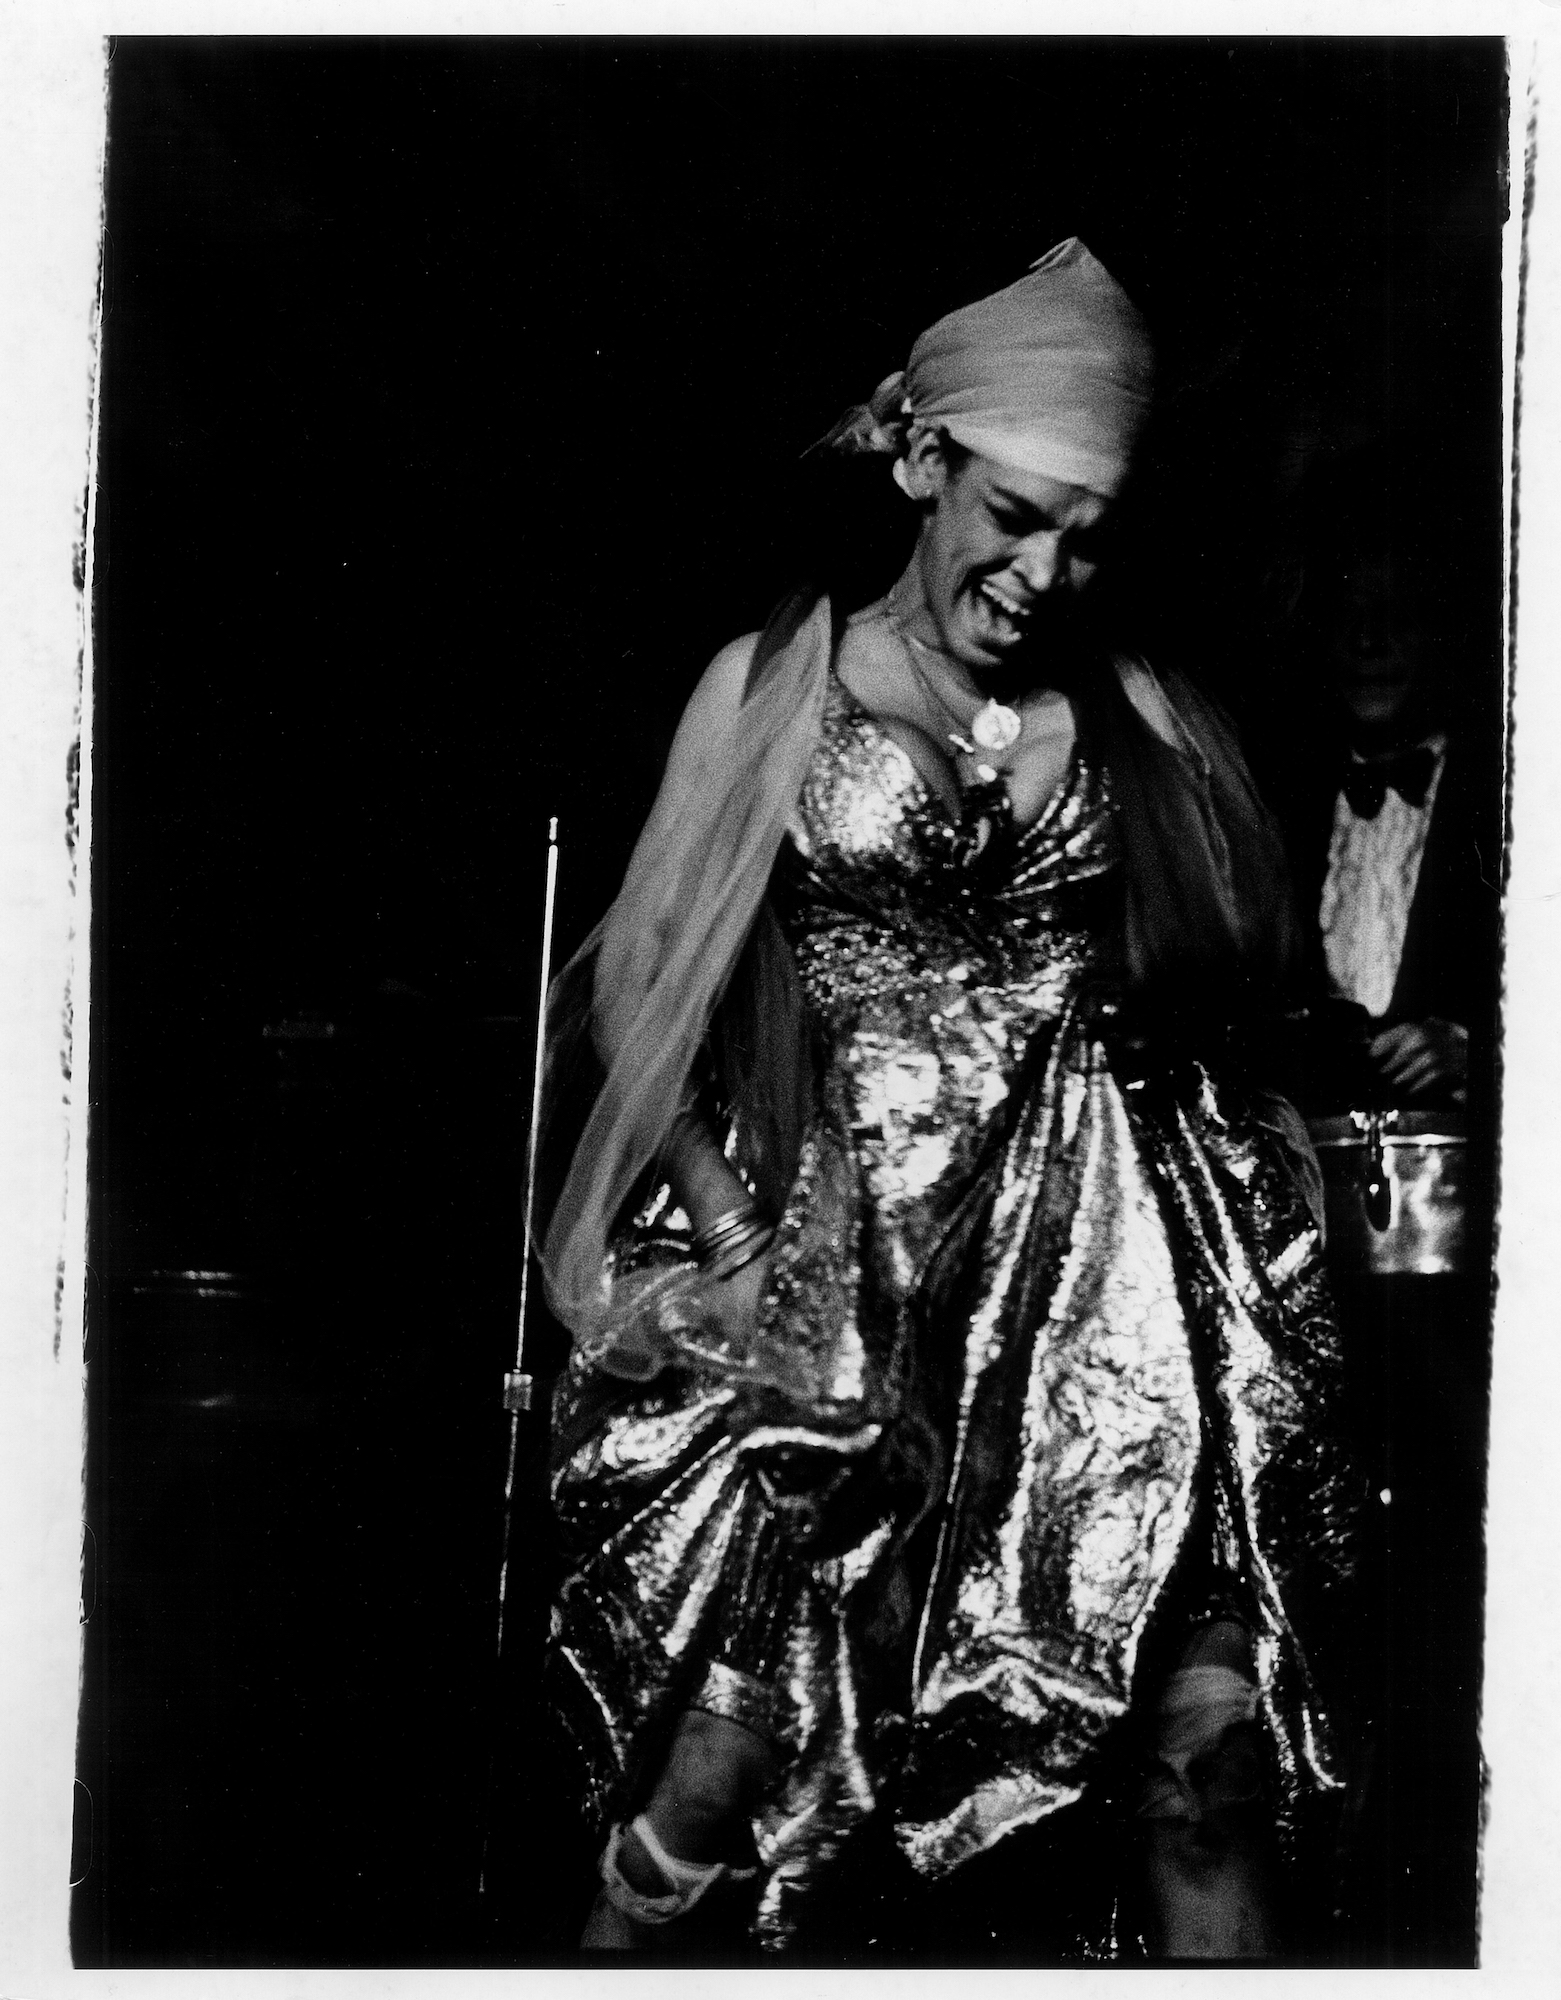 Cuban singer La Lupe performing in New York City, 1970. Gelatin silver print. Gift of Katherine Hall Page (Class of 1969)  Image courtesy of Wellesley College